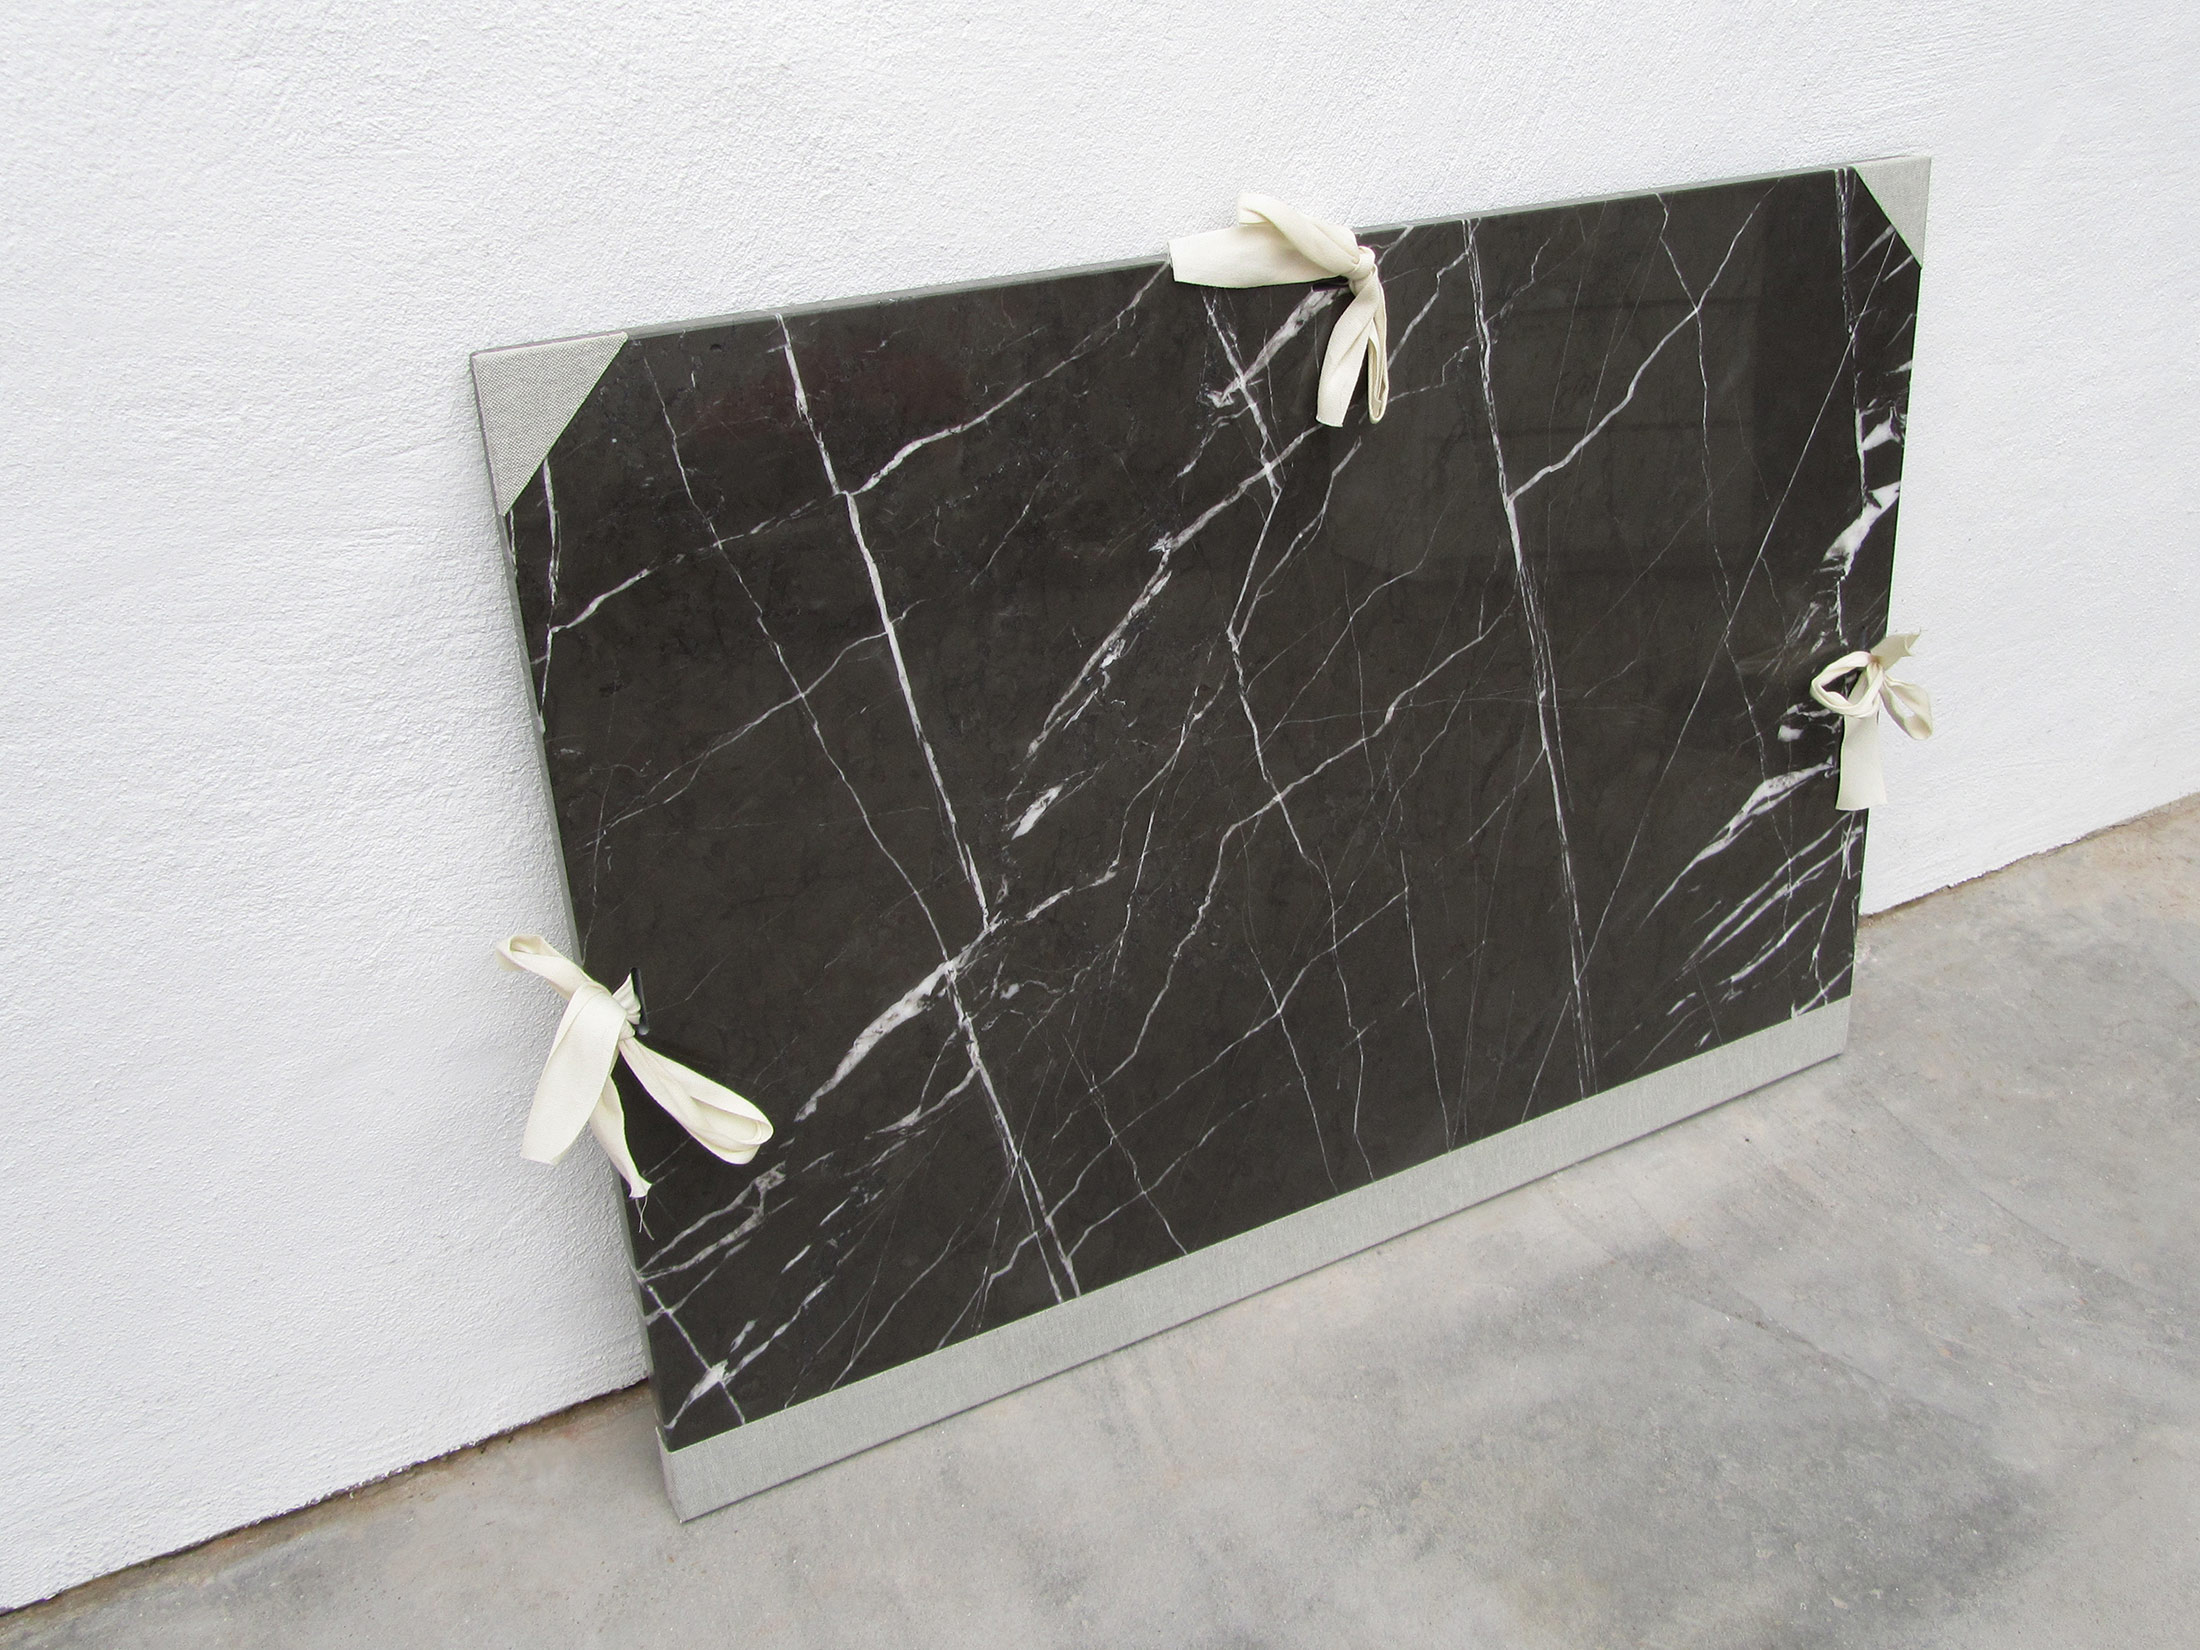 peter de meyer, sculpture, marble in black and white, online viewing room, fine arts